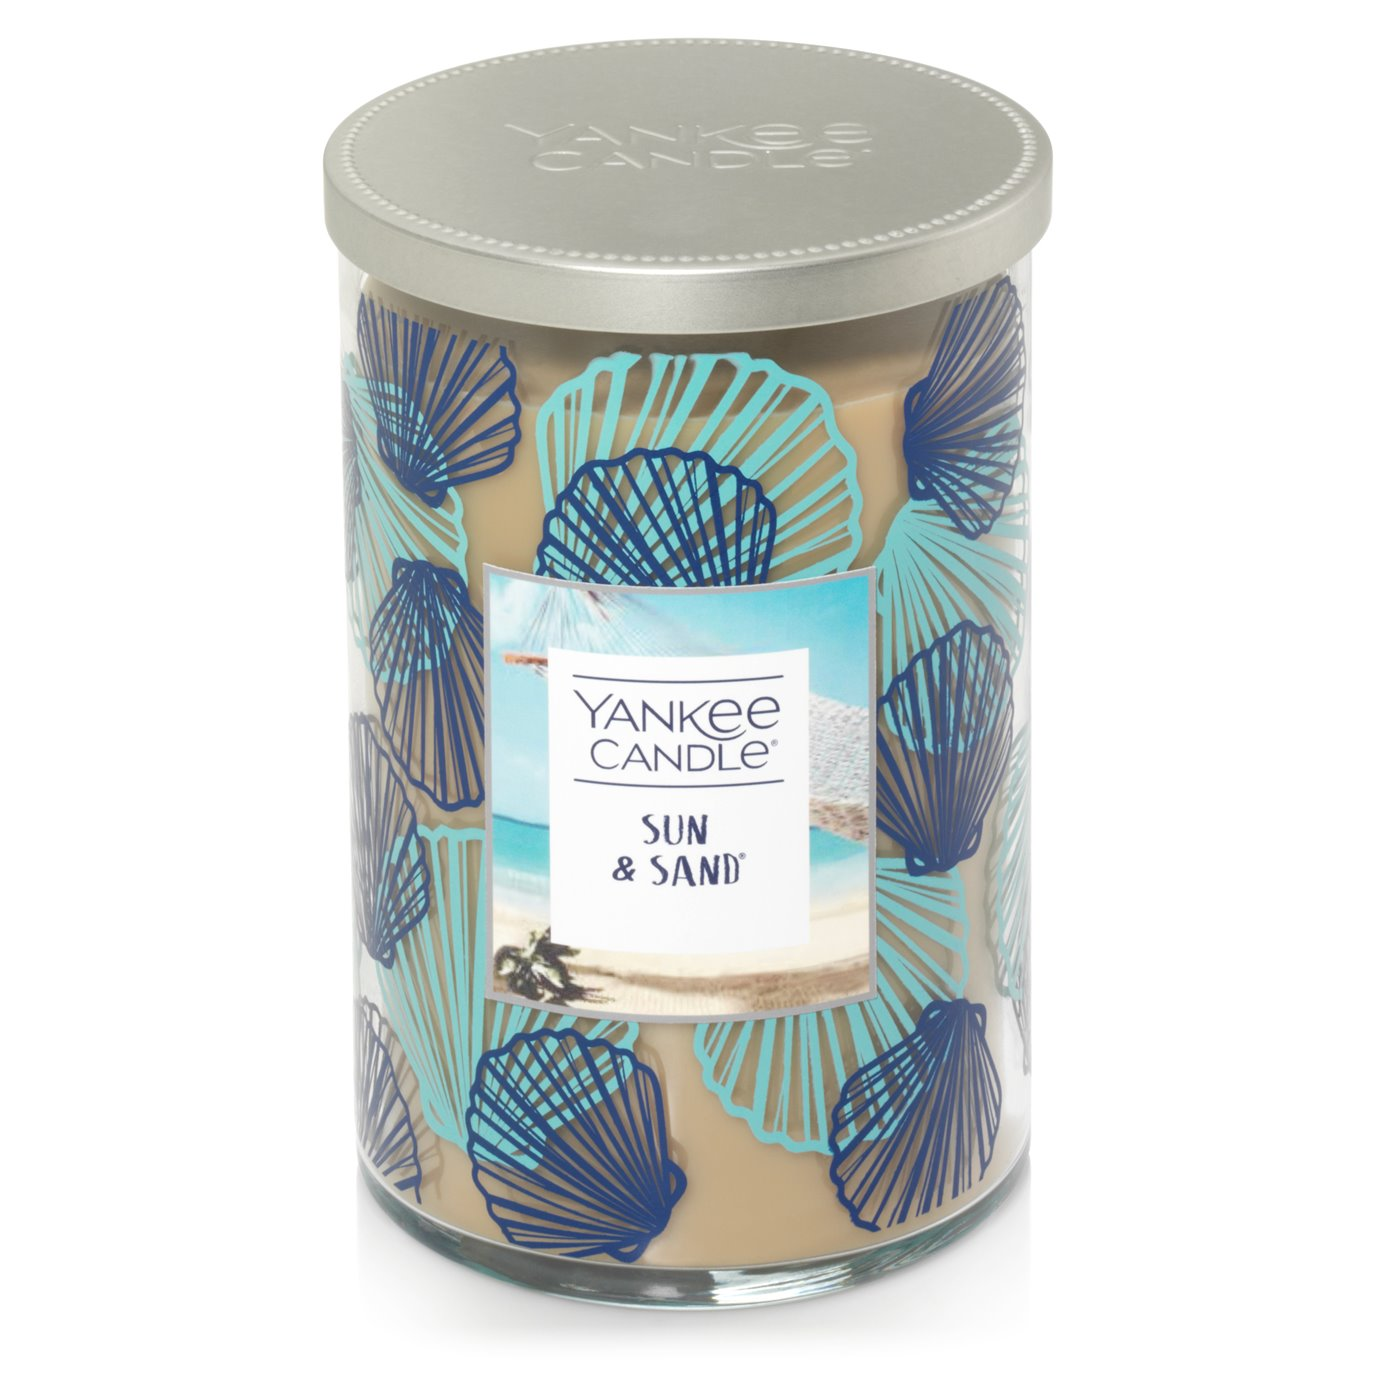 Yankee Candle Sun & Sand Large 2 Wick Cylinder Candle-Seashell